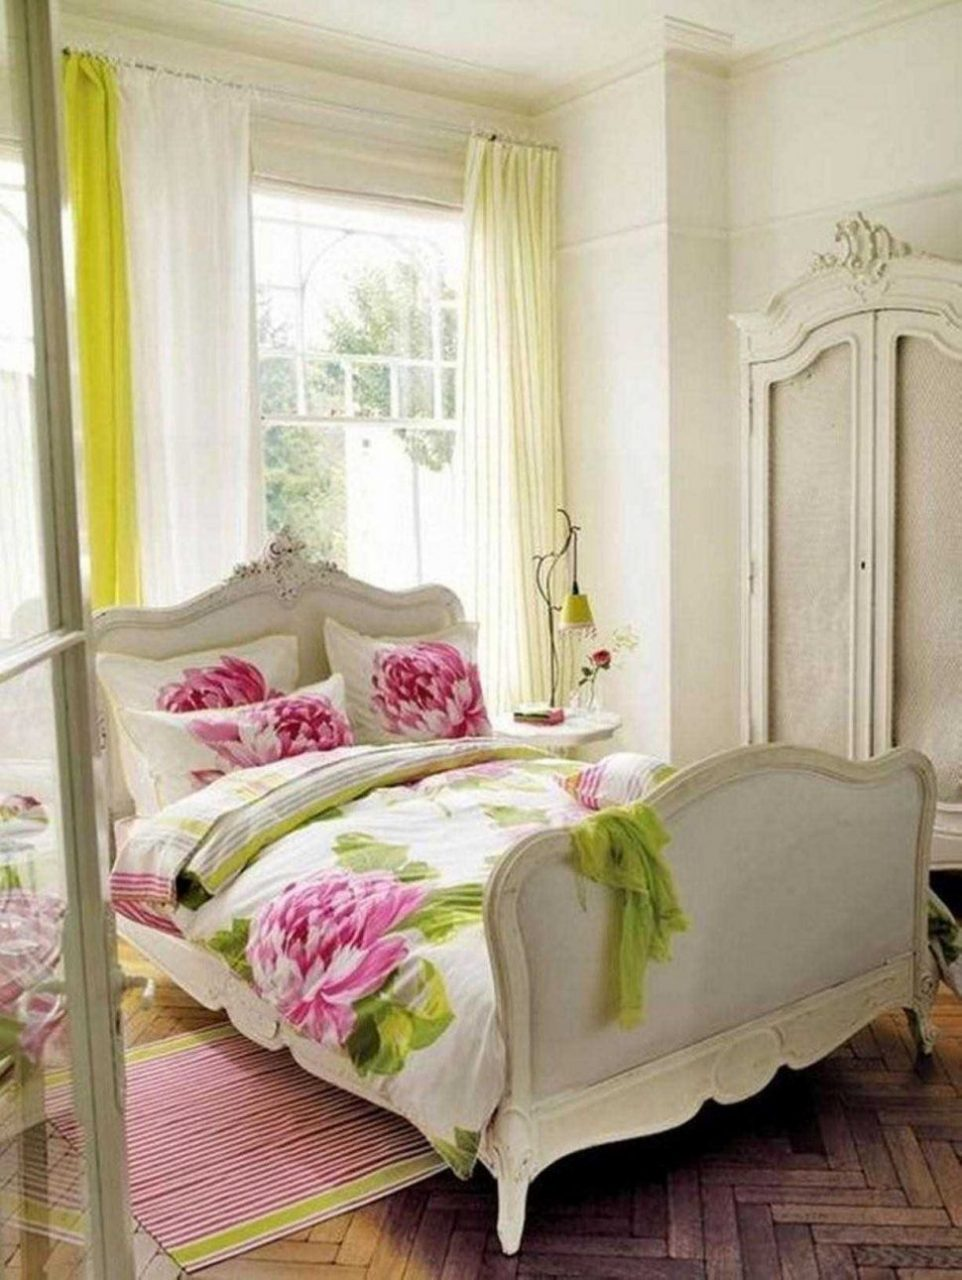 Bohemian Shab Chic Bedroom Pindmpress Shelia On Eclectic Cottage